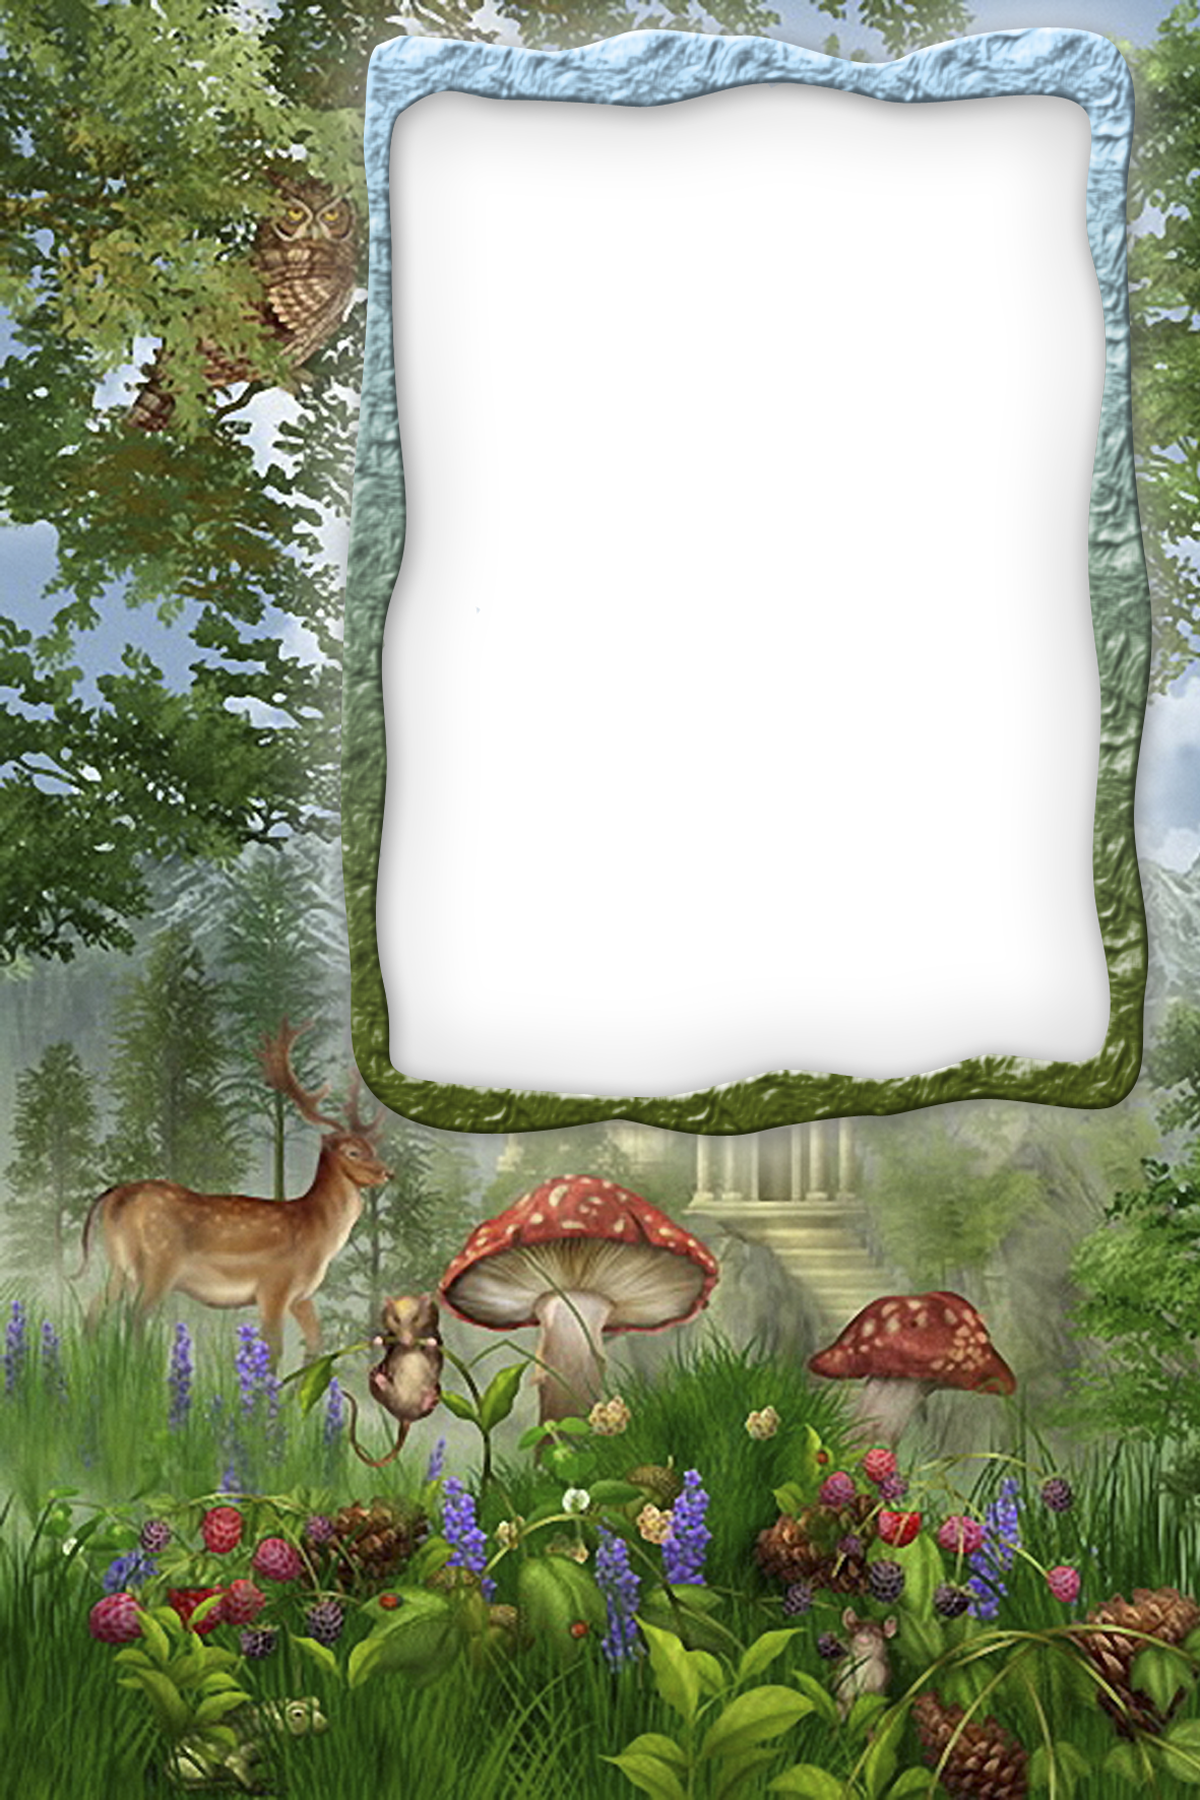 Free nature photo frames Andy Price - Comic Artist - The Most Popular Comic Art by Andy Price